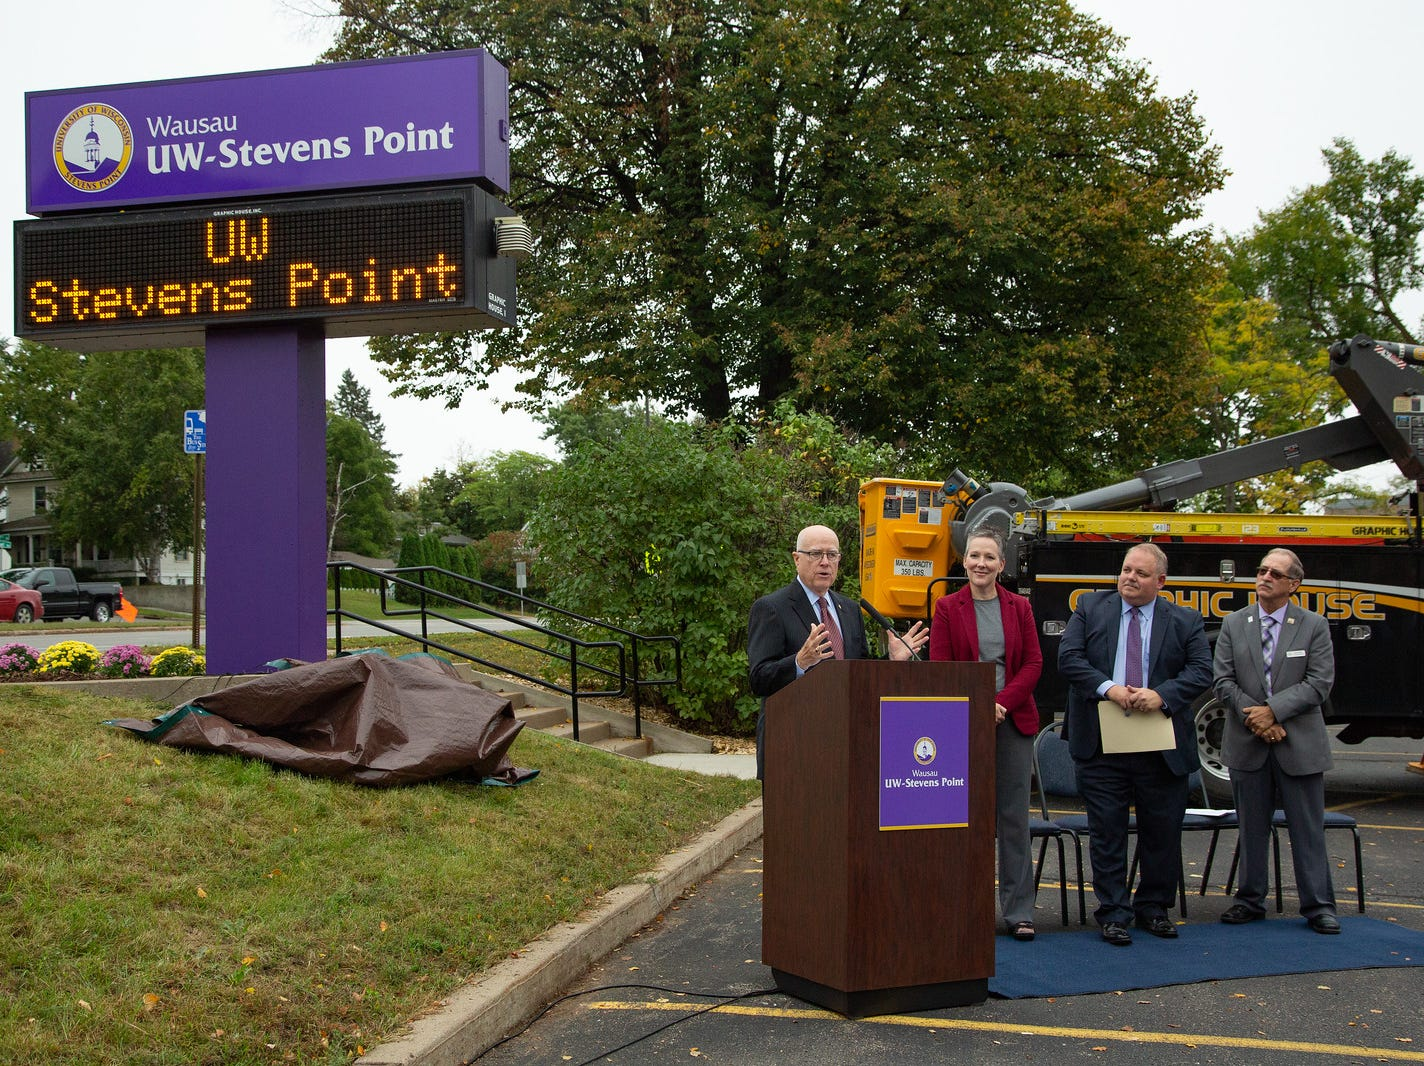 UW-Stevens Point Chancellor Bernie Patterson, Wausau Campus Executive Ann Herda-Rapp, Wausau Mayor Robert Mielke and Marathon County Board Chairman Kurt Gibbs spoke at the Wausau sign unveiling.